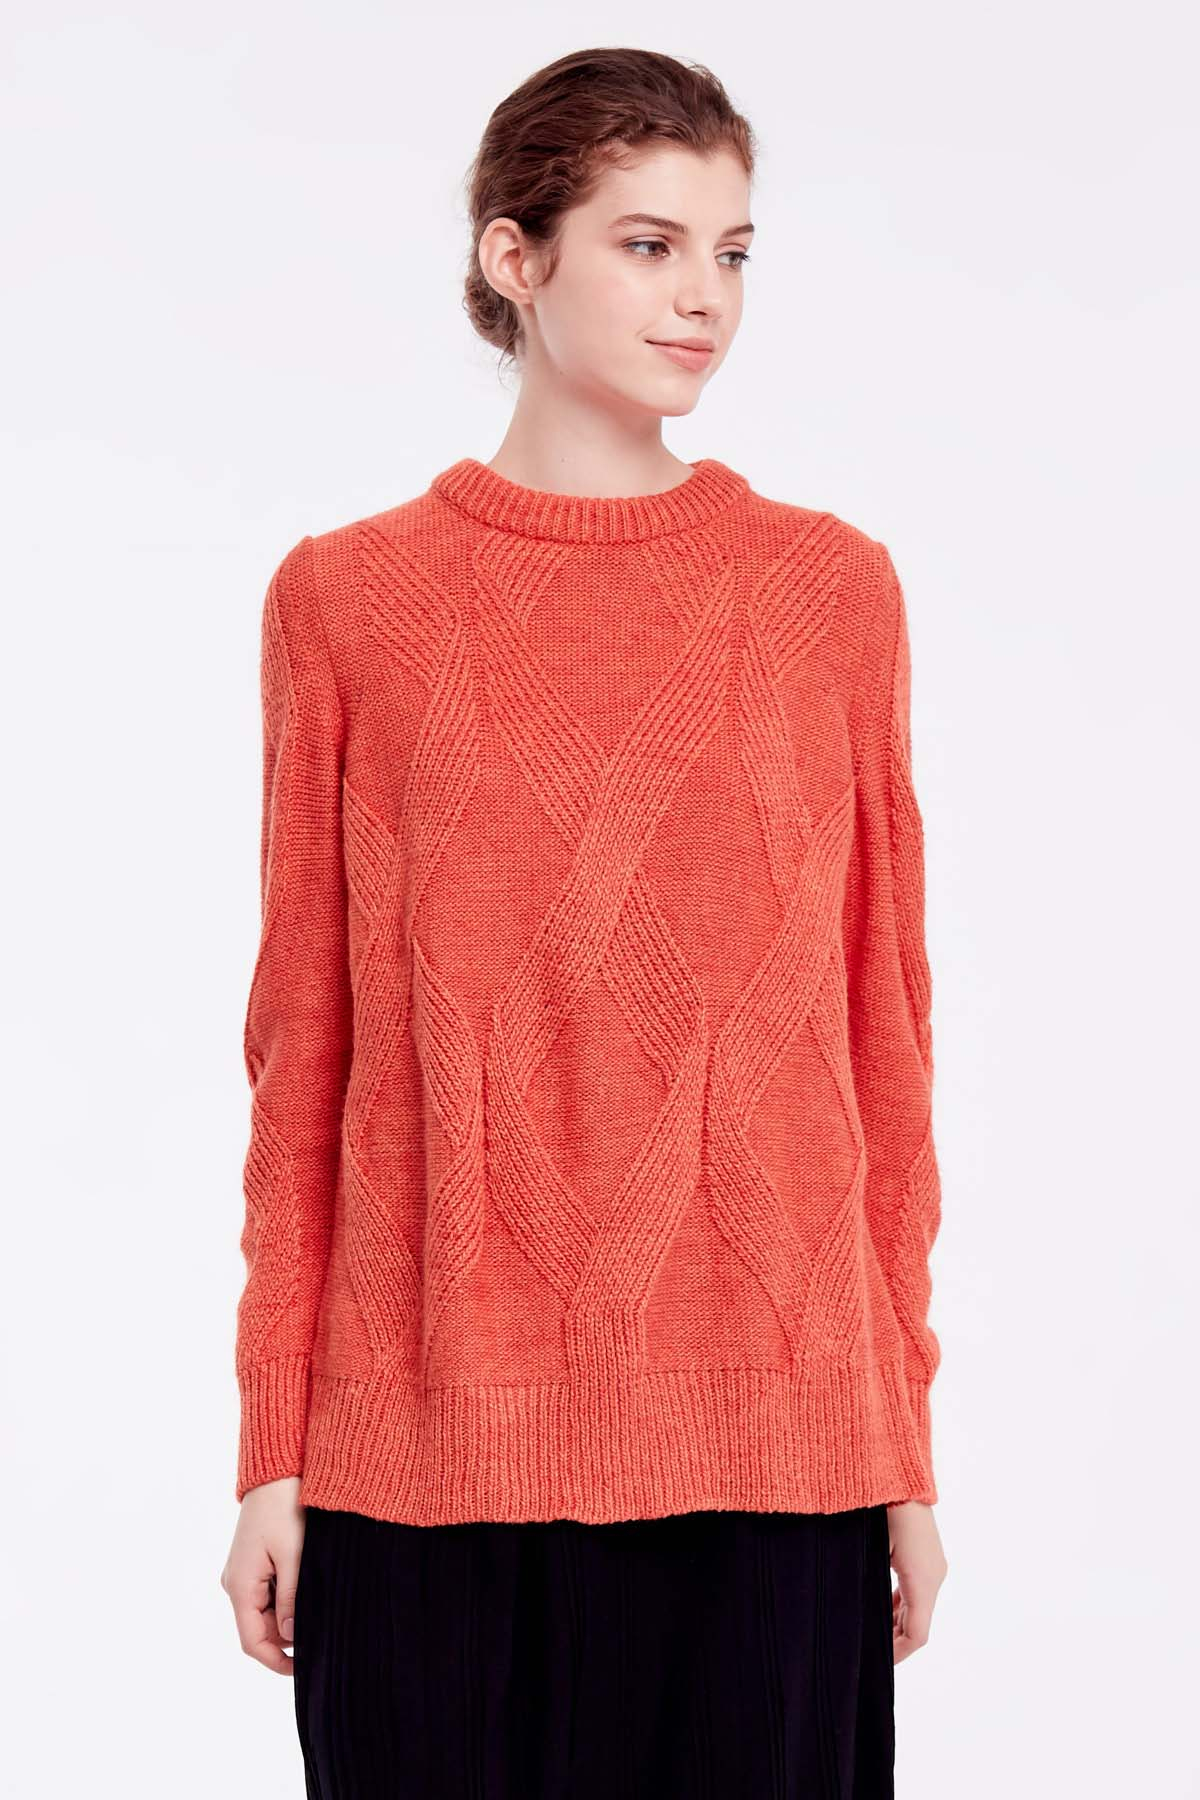 Free Knitting Patterns For Sweater Coats Orange Free Knit Sweater